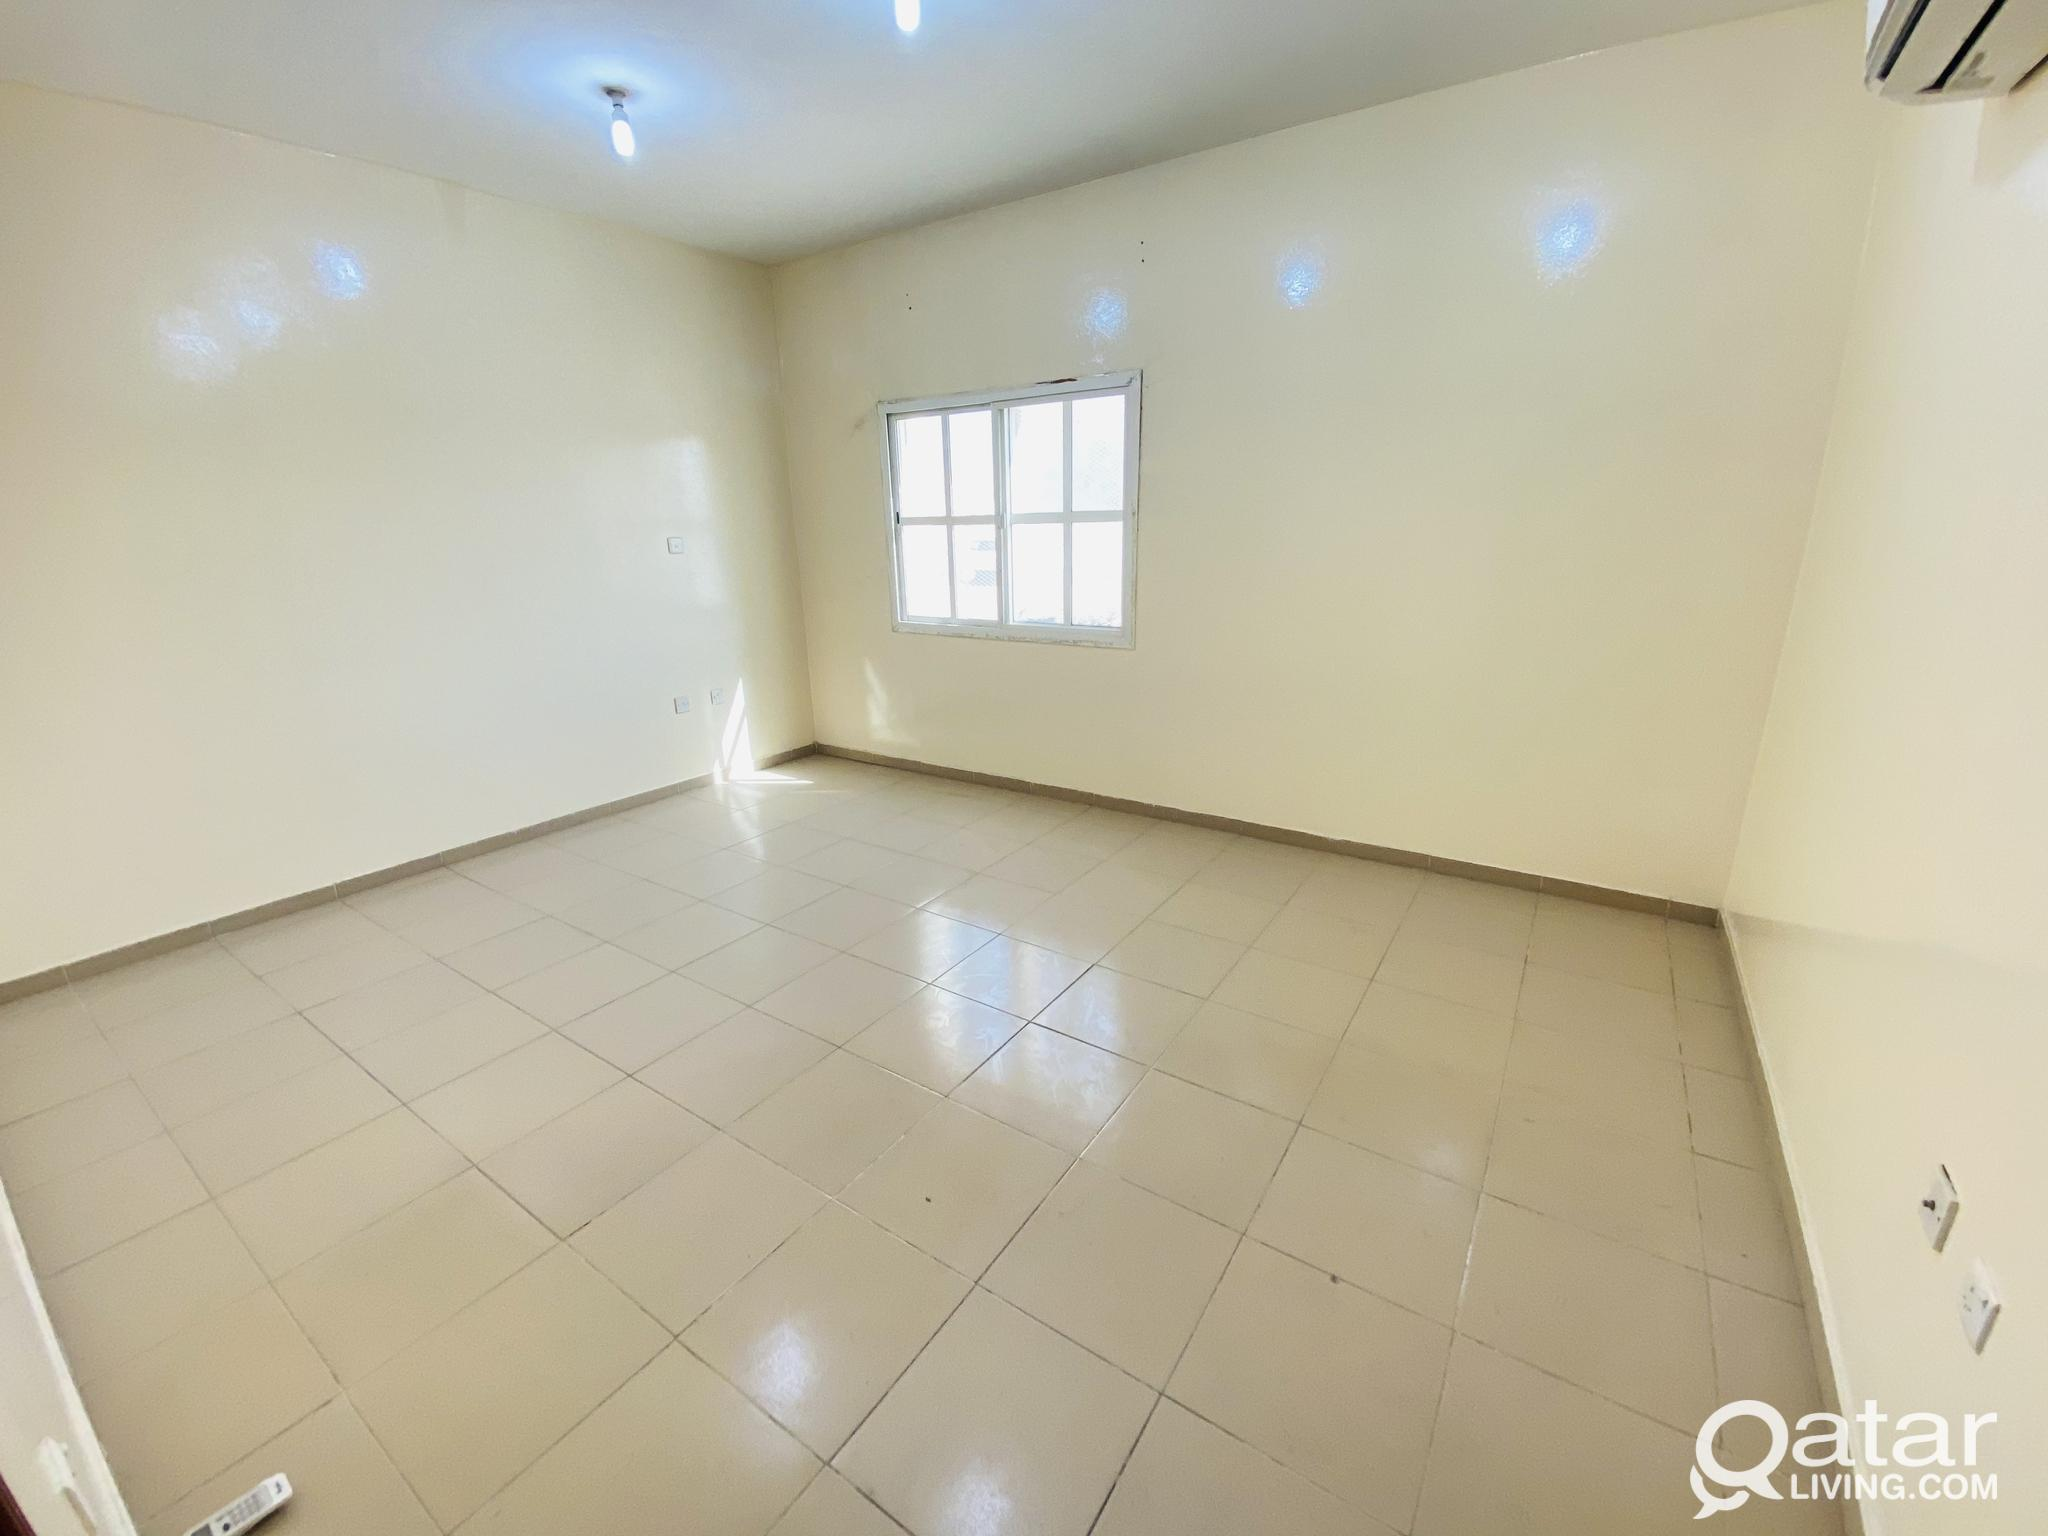 SPACIOUS 3BHK FLAT FOR RENT IN WAKRA